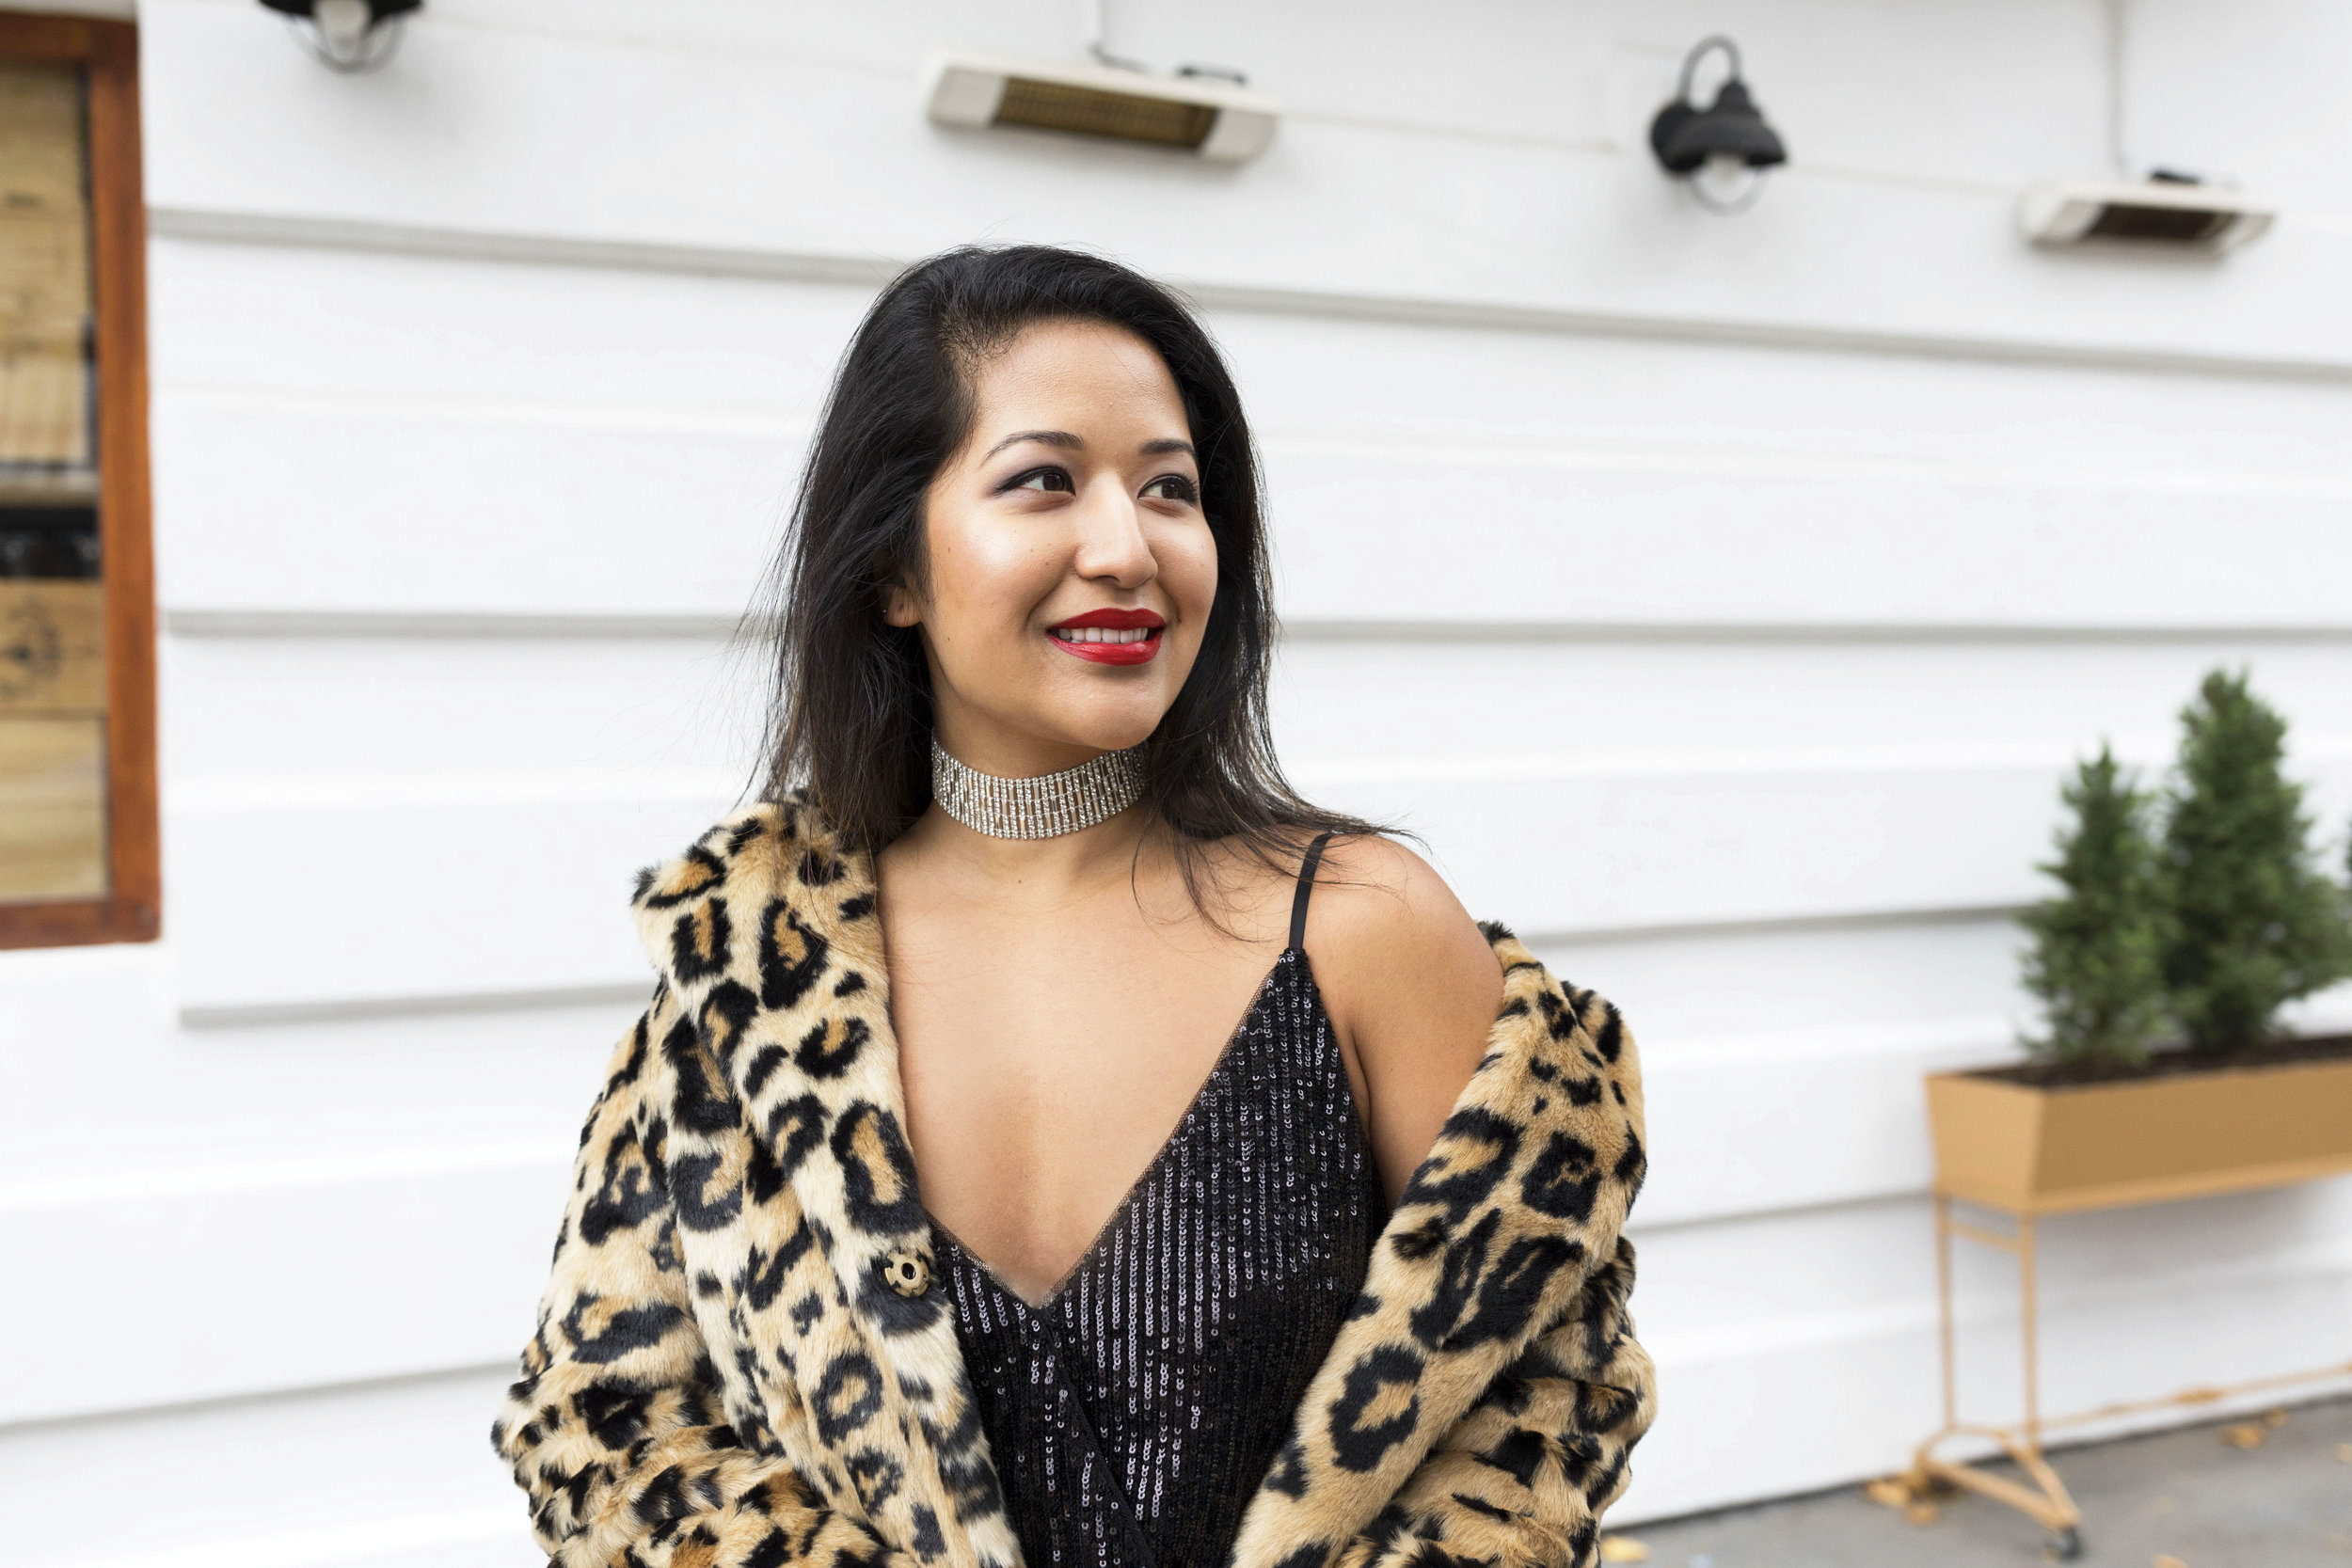 Krity S x New Years Eve Outfit x Sequin Jumpsuit and Cheetah Faux Fur4.jpg